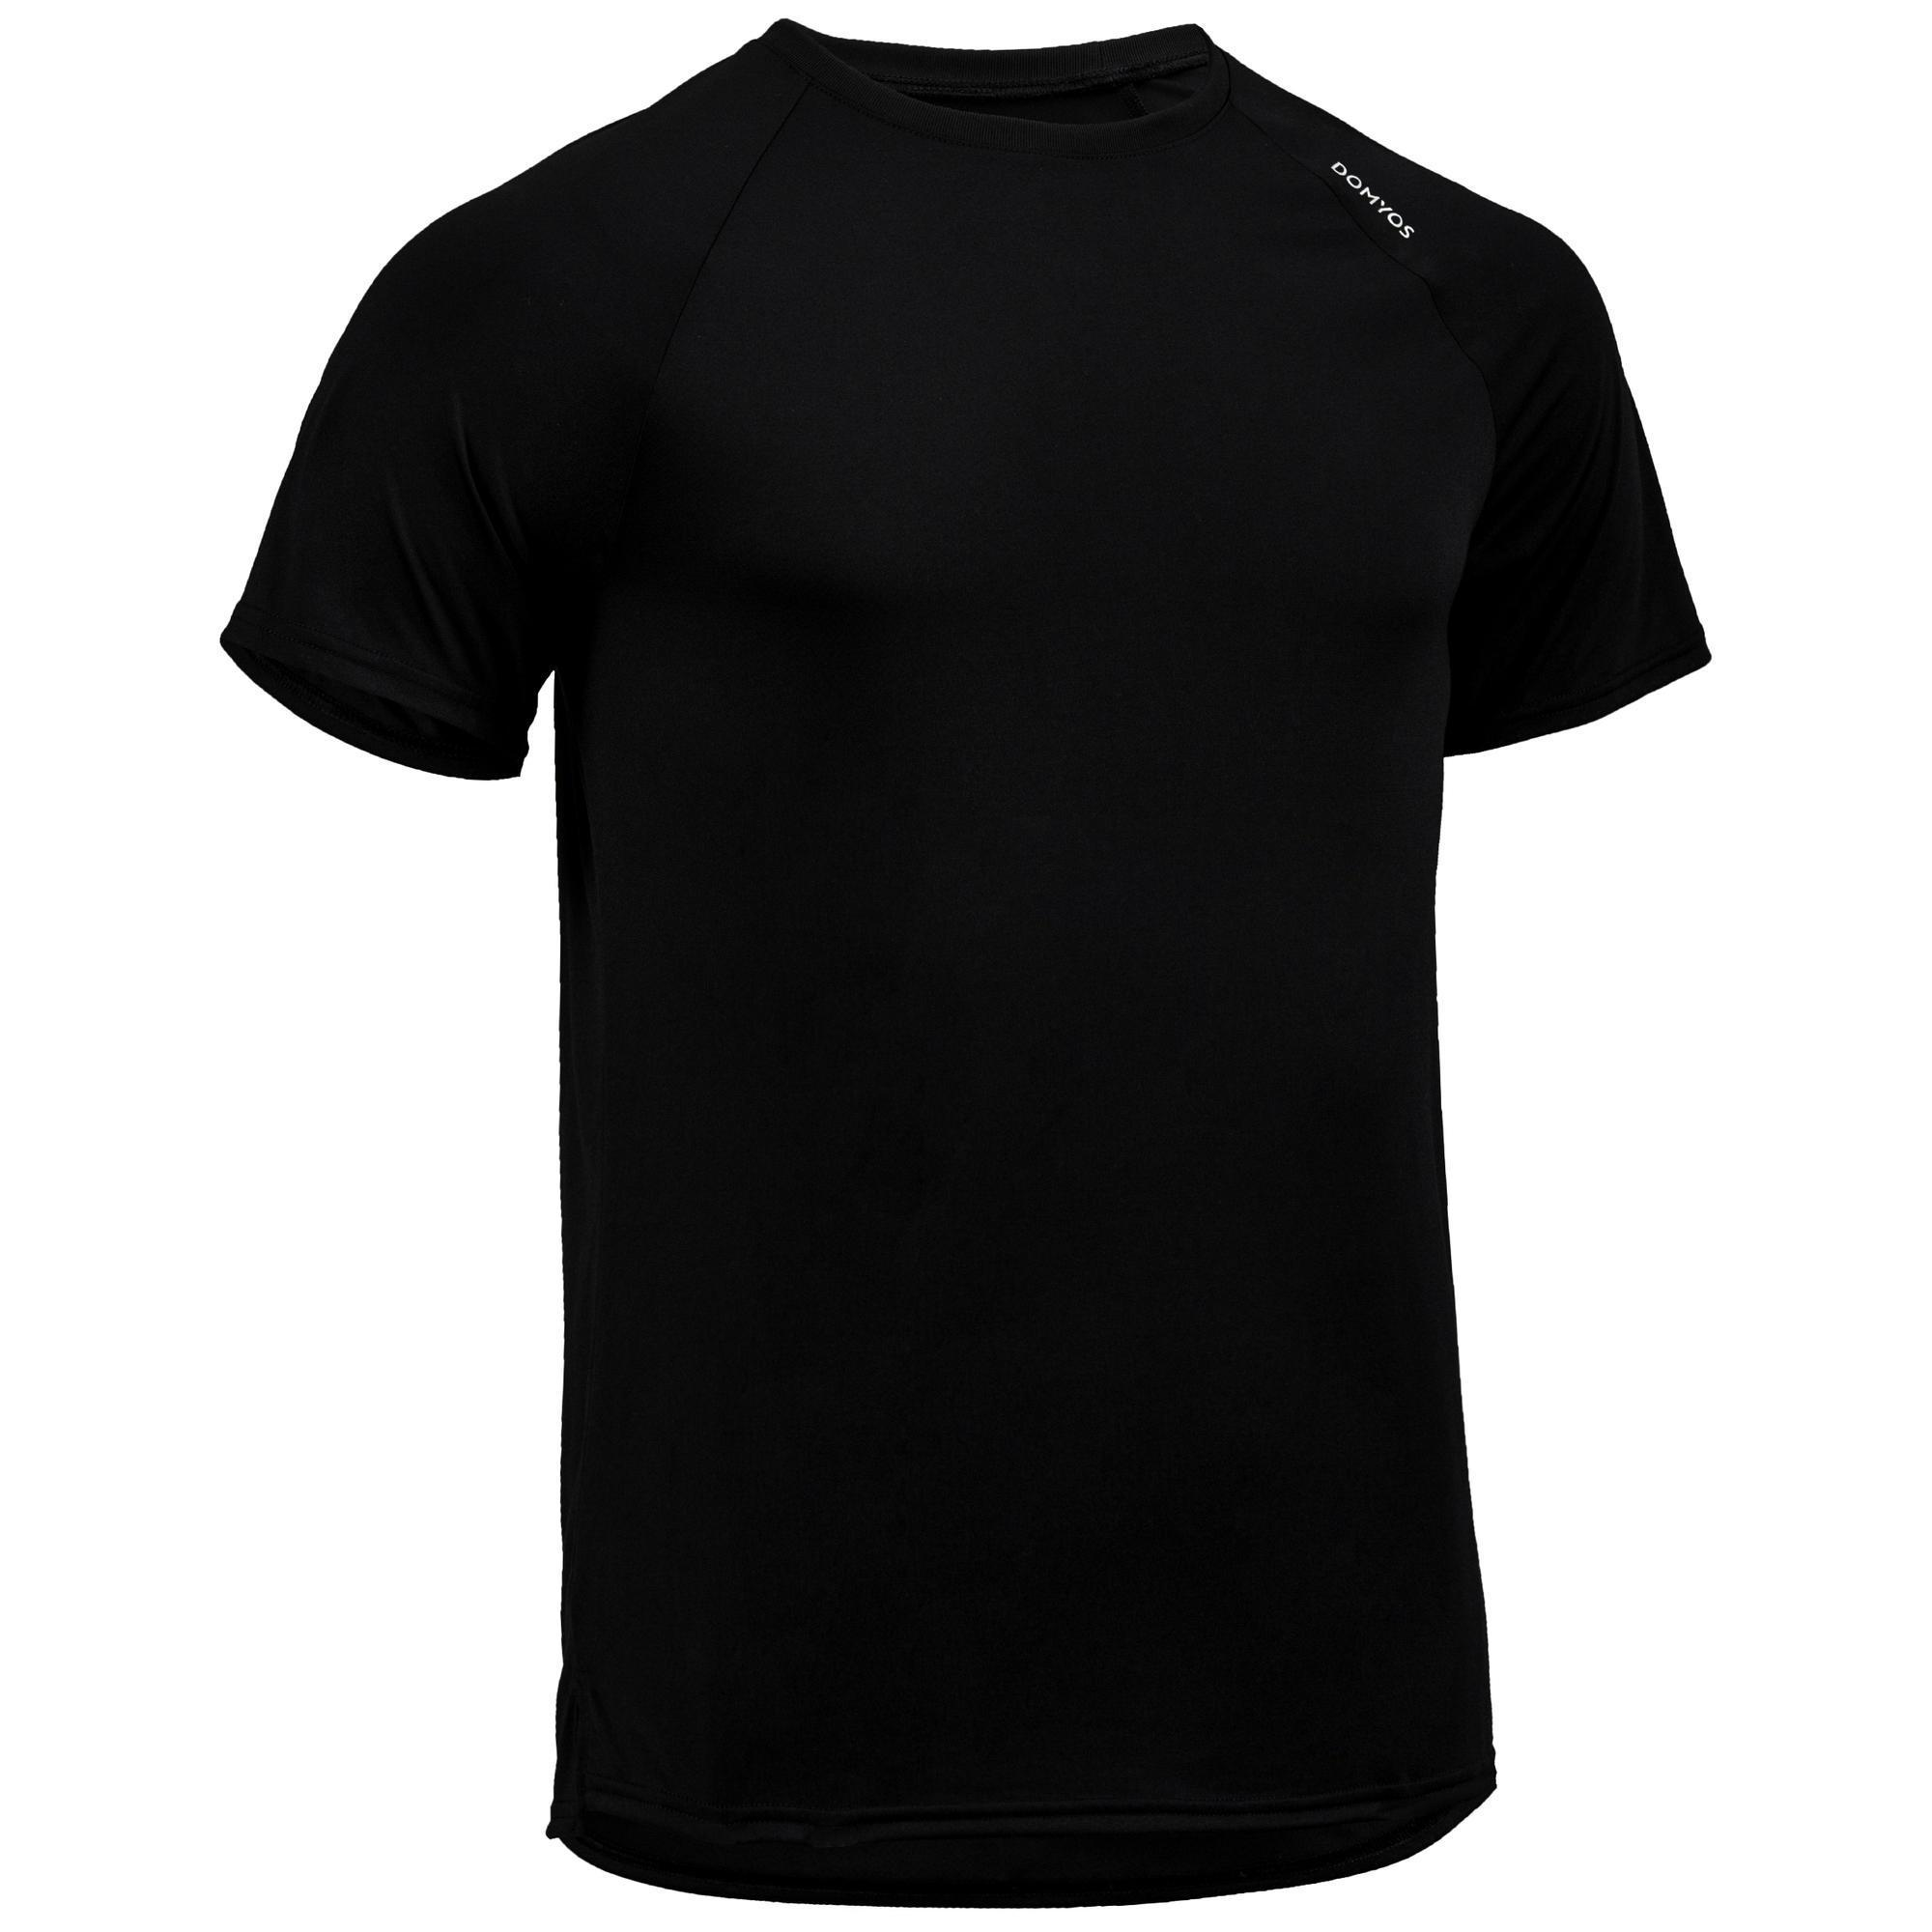 fts 100 cardio fitness t shirt black domyos by decathlon. Black Bedroom Furniture Sets. Home Design Ideas